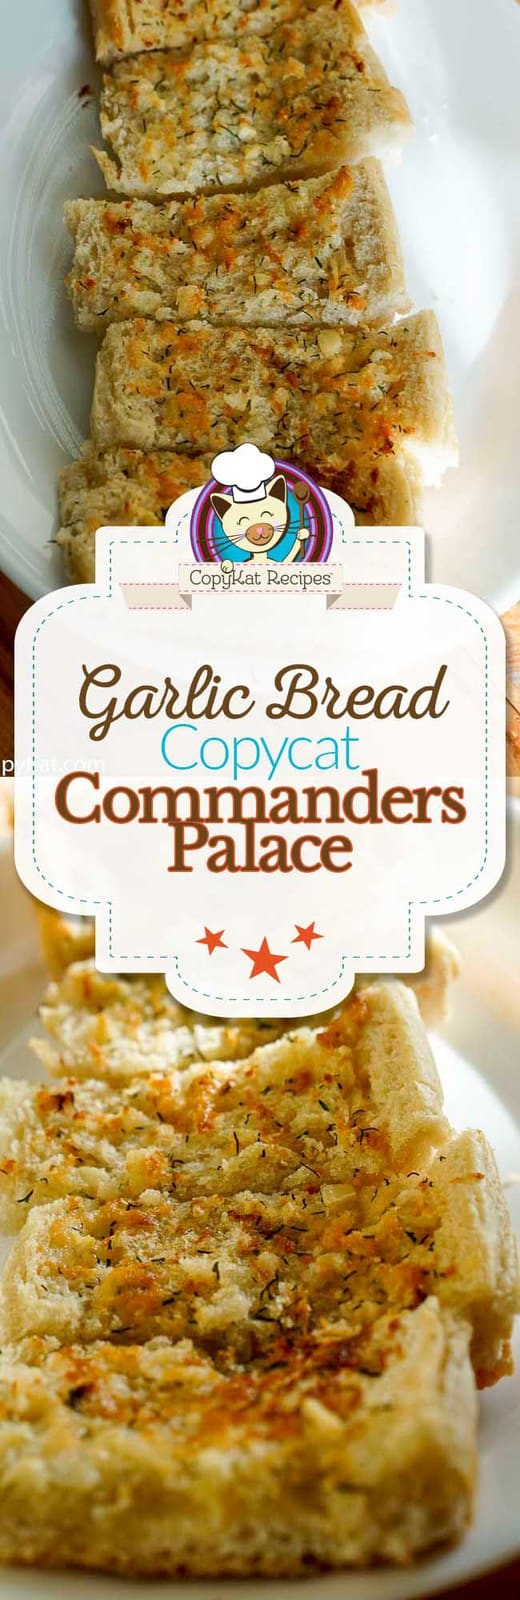 You can recreate Commander's Palace famous garlic bread with this easy copycat recipe.